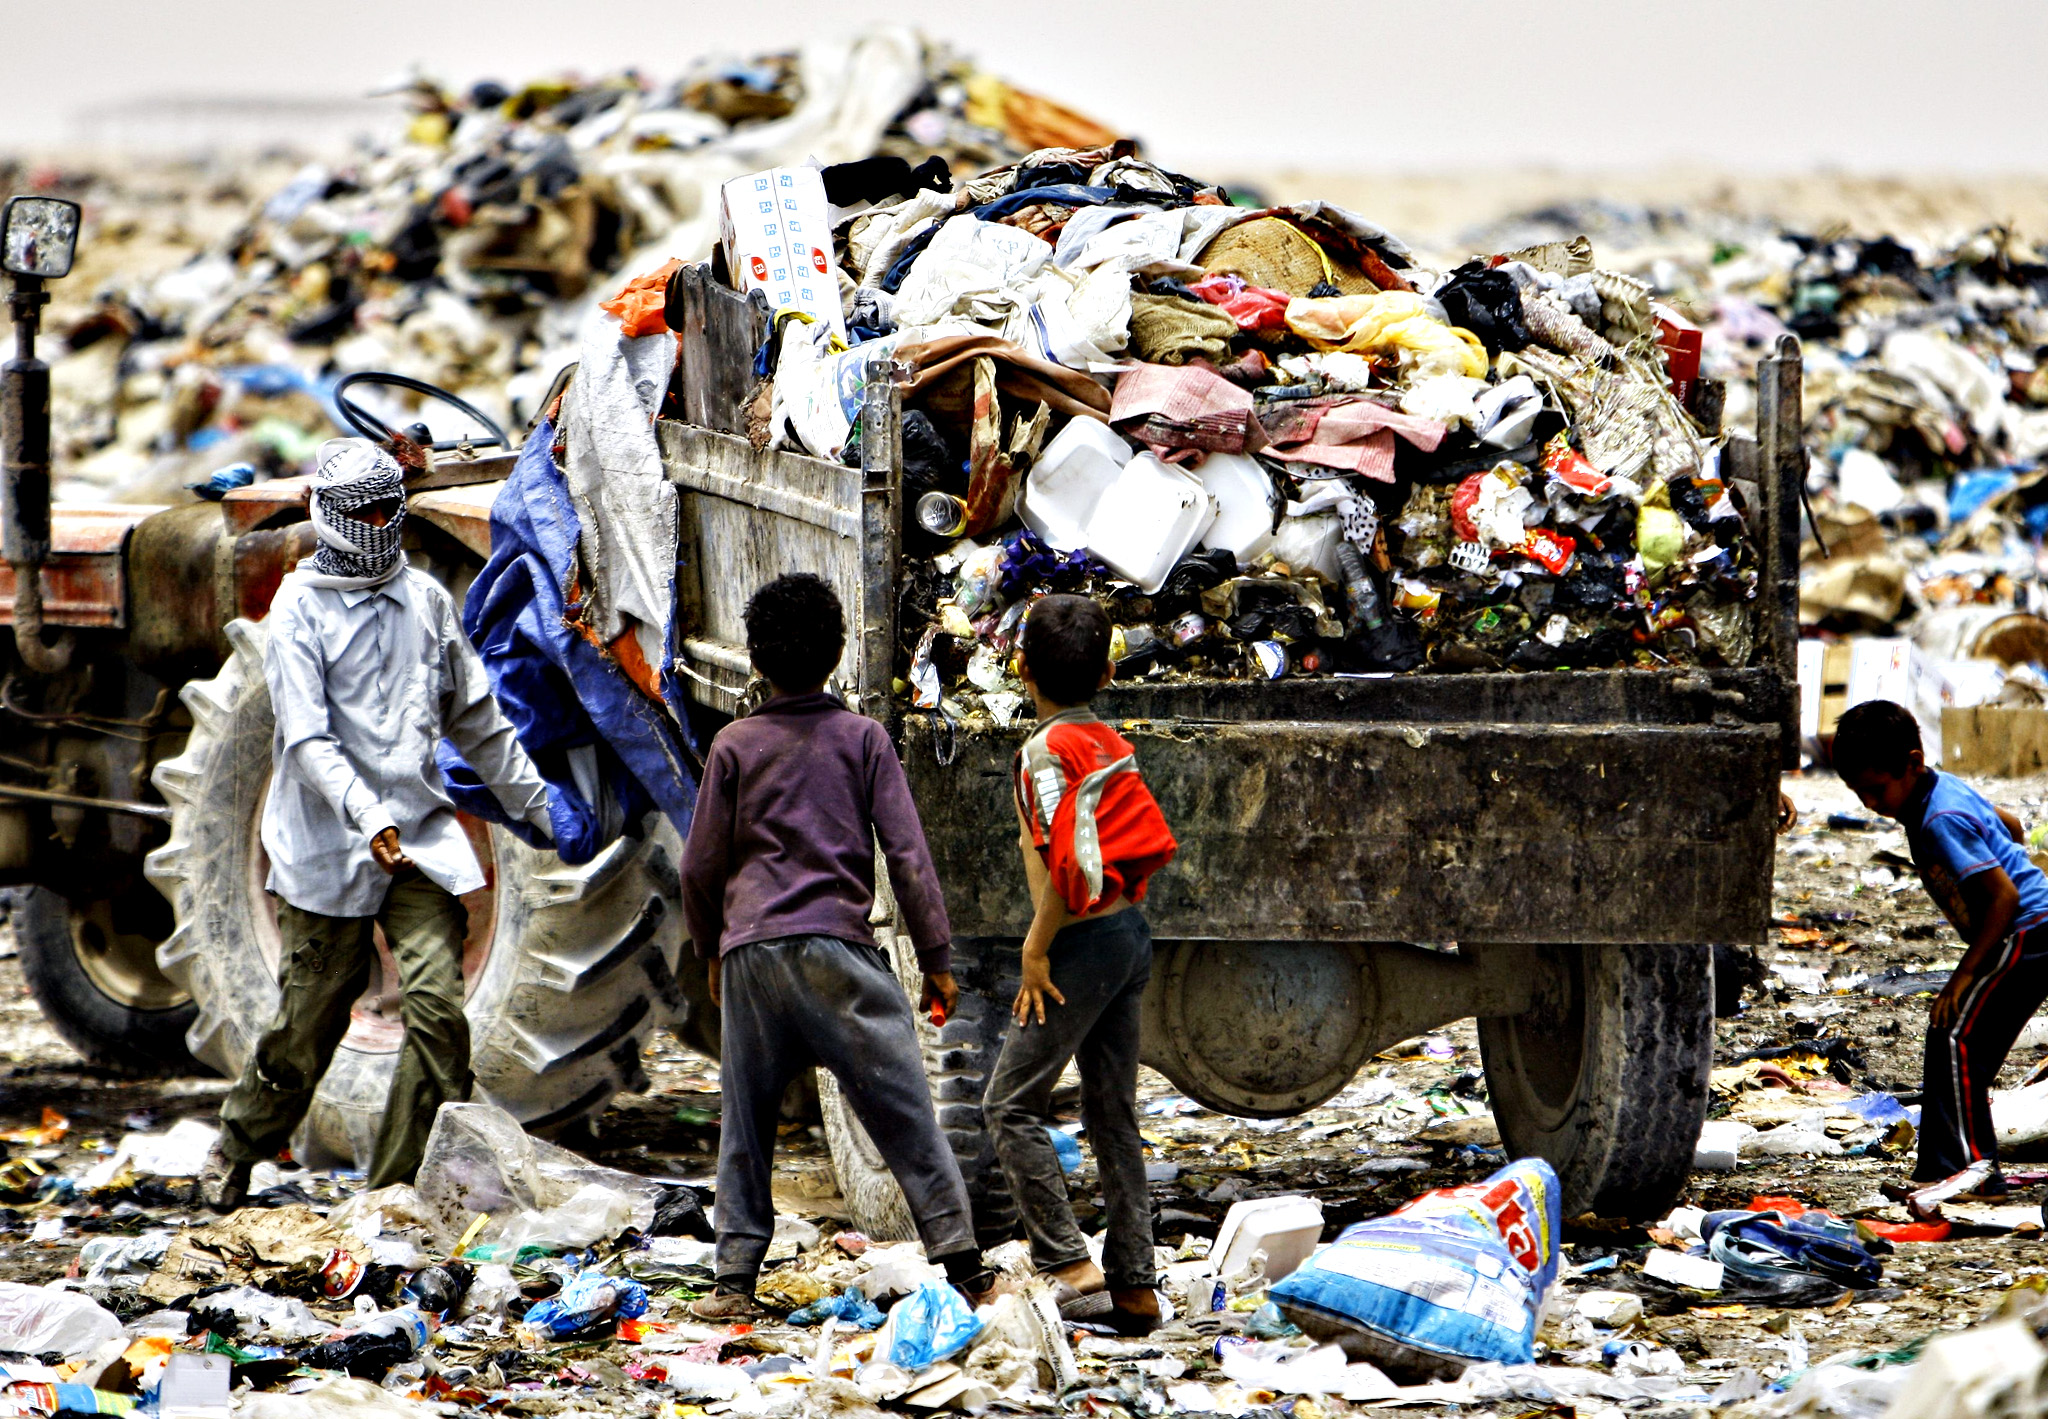 Iraqi children search through garbage for recyclable items on June 10, 2014, at a waste dump on the outskirts of the shrine city of Najaf, in central Iraq.